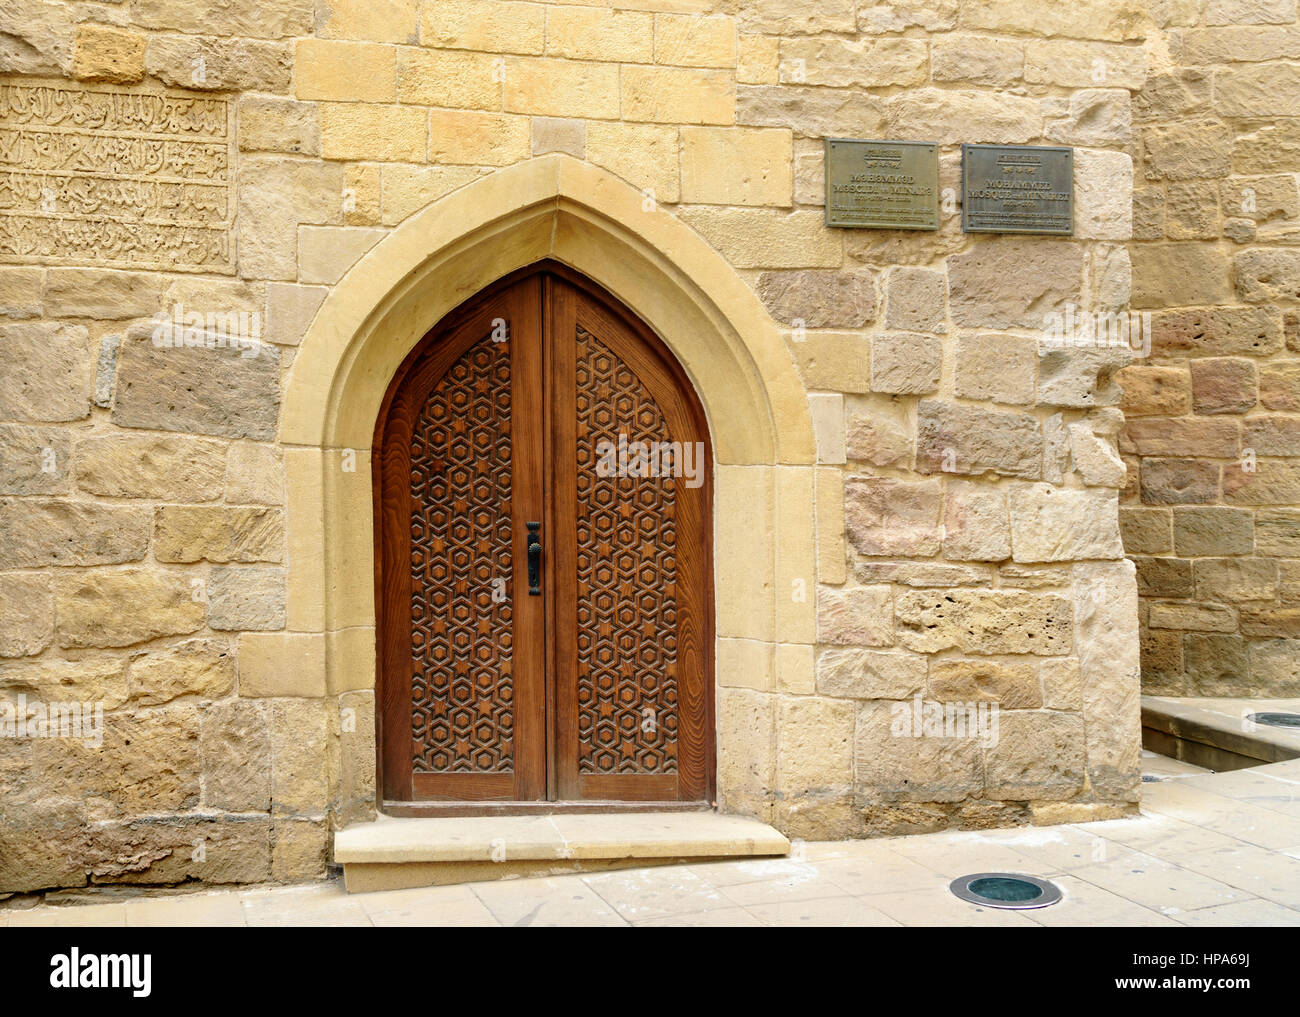 Baku, Azerbaijan - September 10, 2016: Traditional wooden door with curved arch in Old city, Icheri Sheher is the - Stock Image